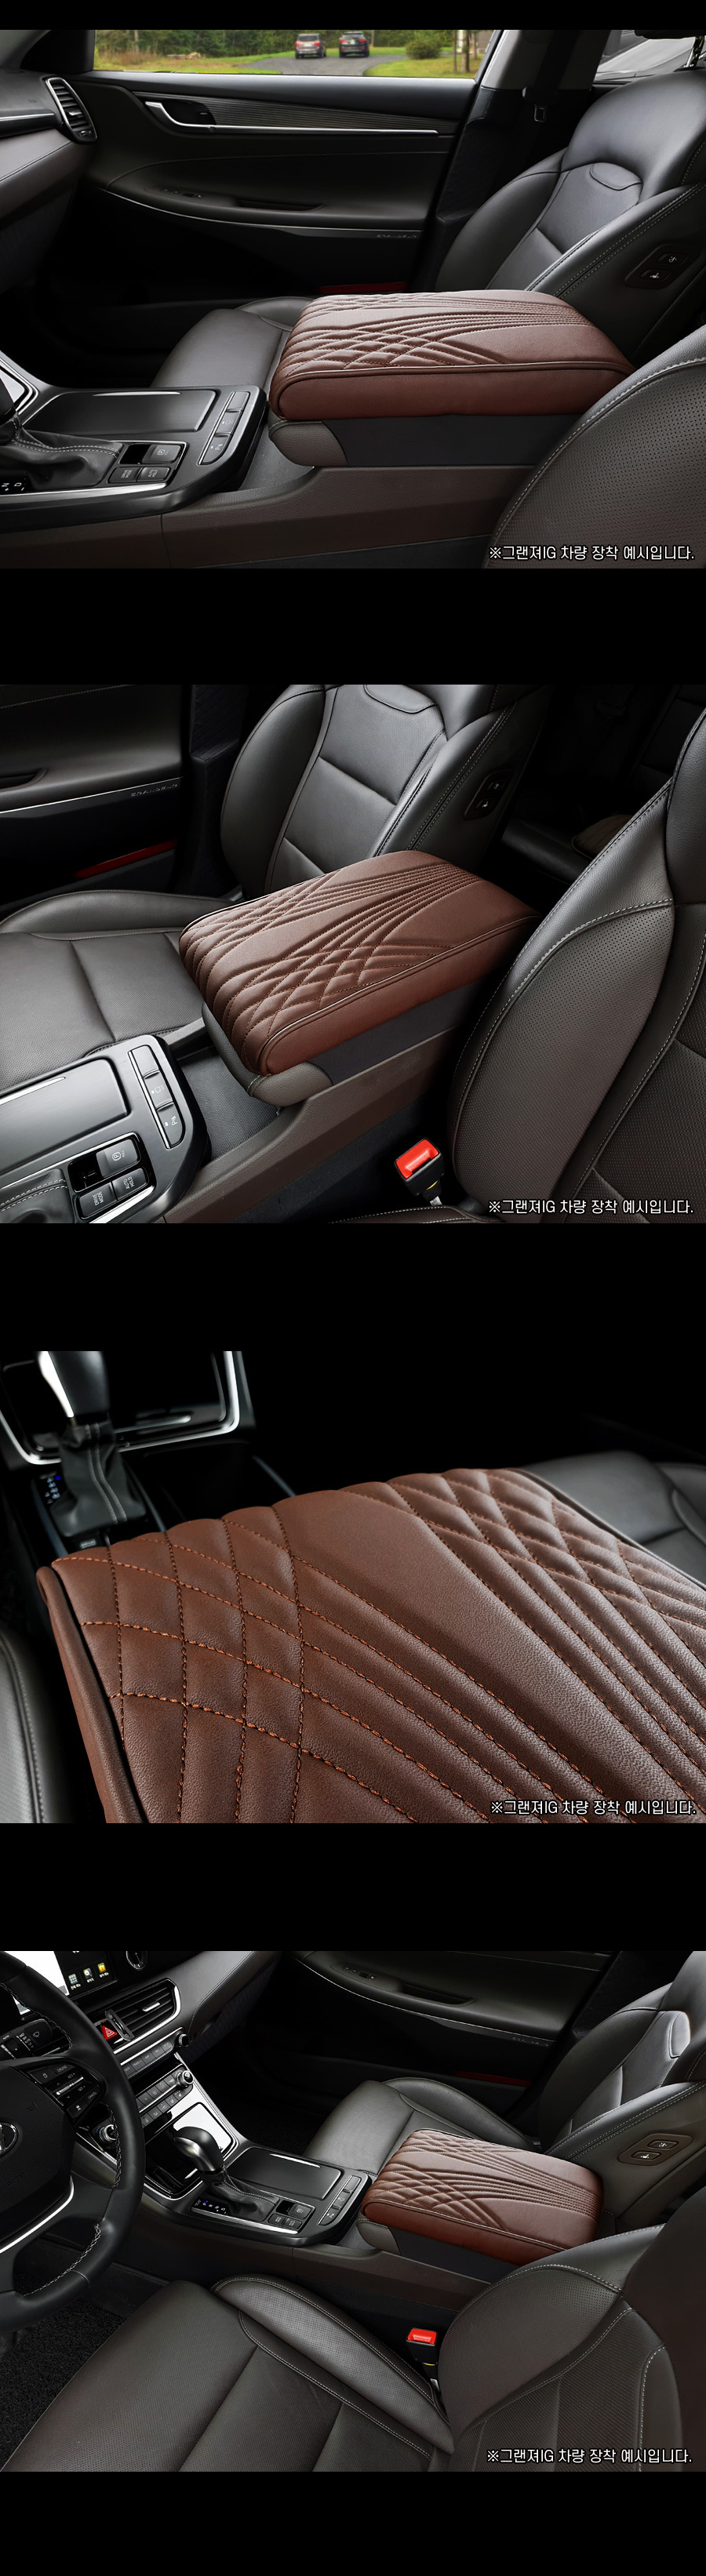 leather-flare-console-cushion_06.jpg